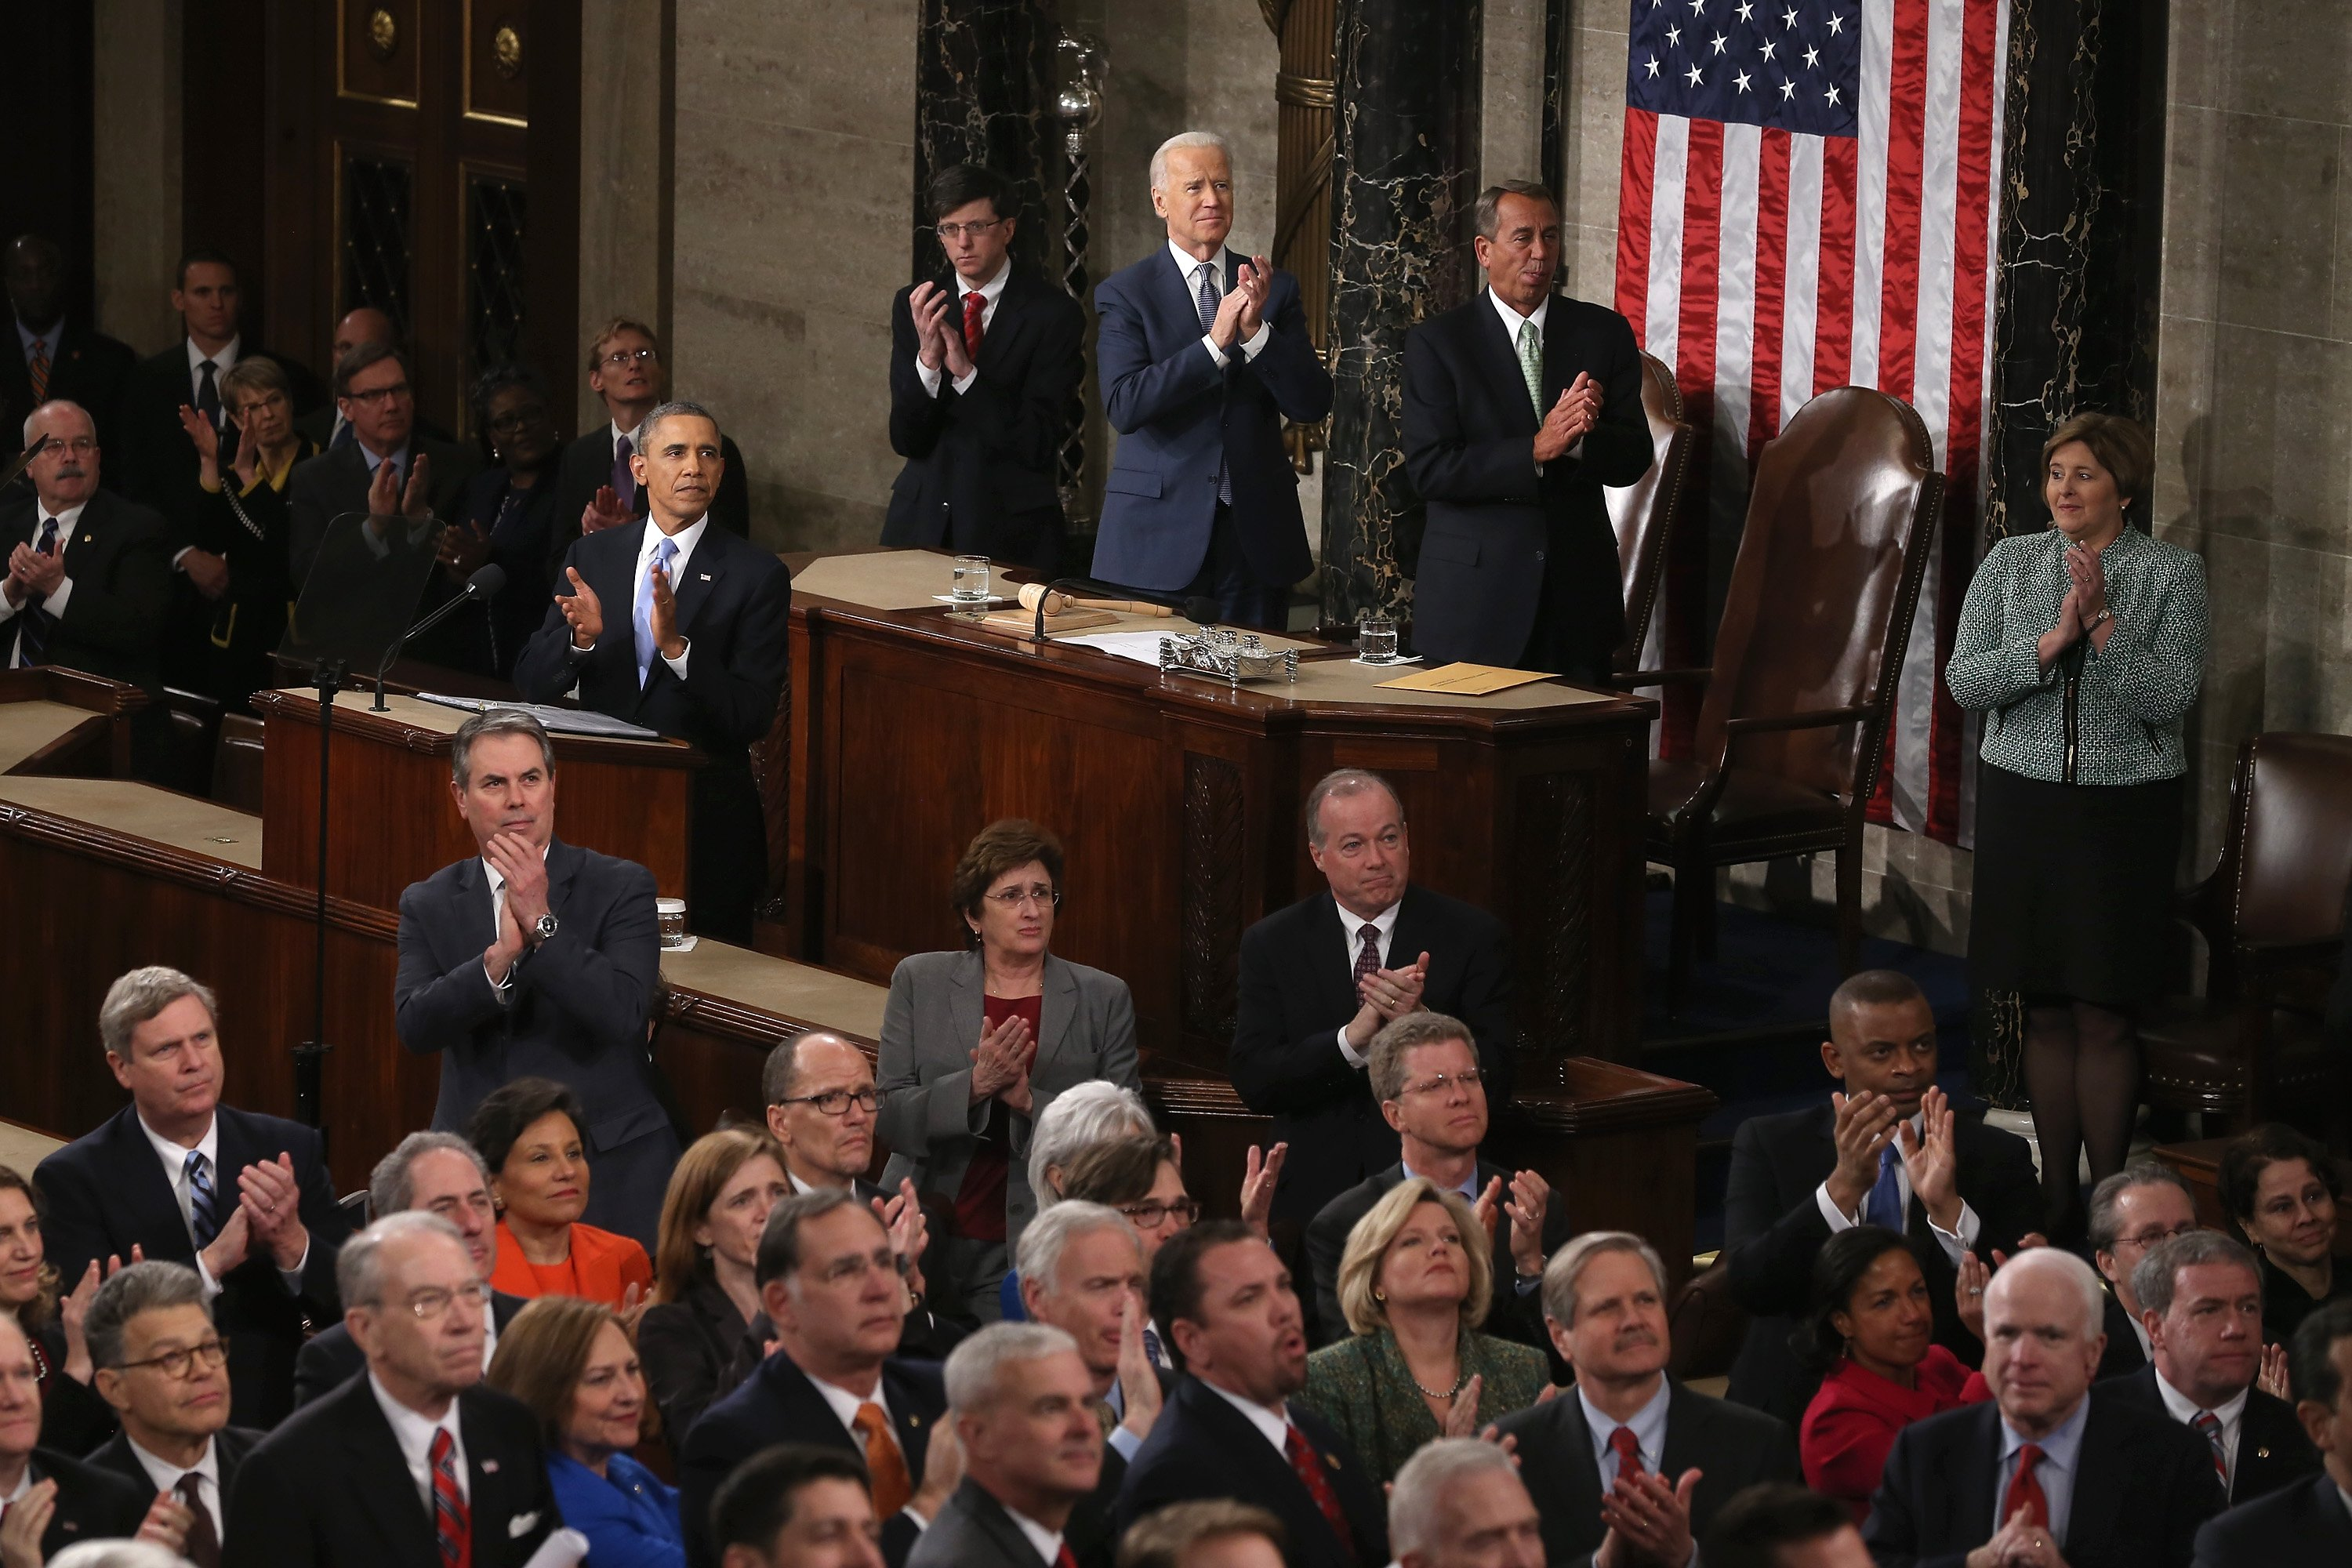 The chamber stands to applaud for U.S. Army Ranger Sgt. First Class Cory Remsburg as he is acknowledged in President Barack Obama's address.